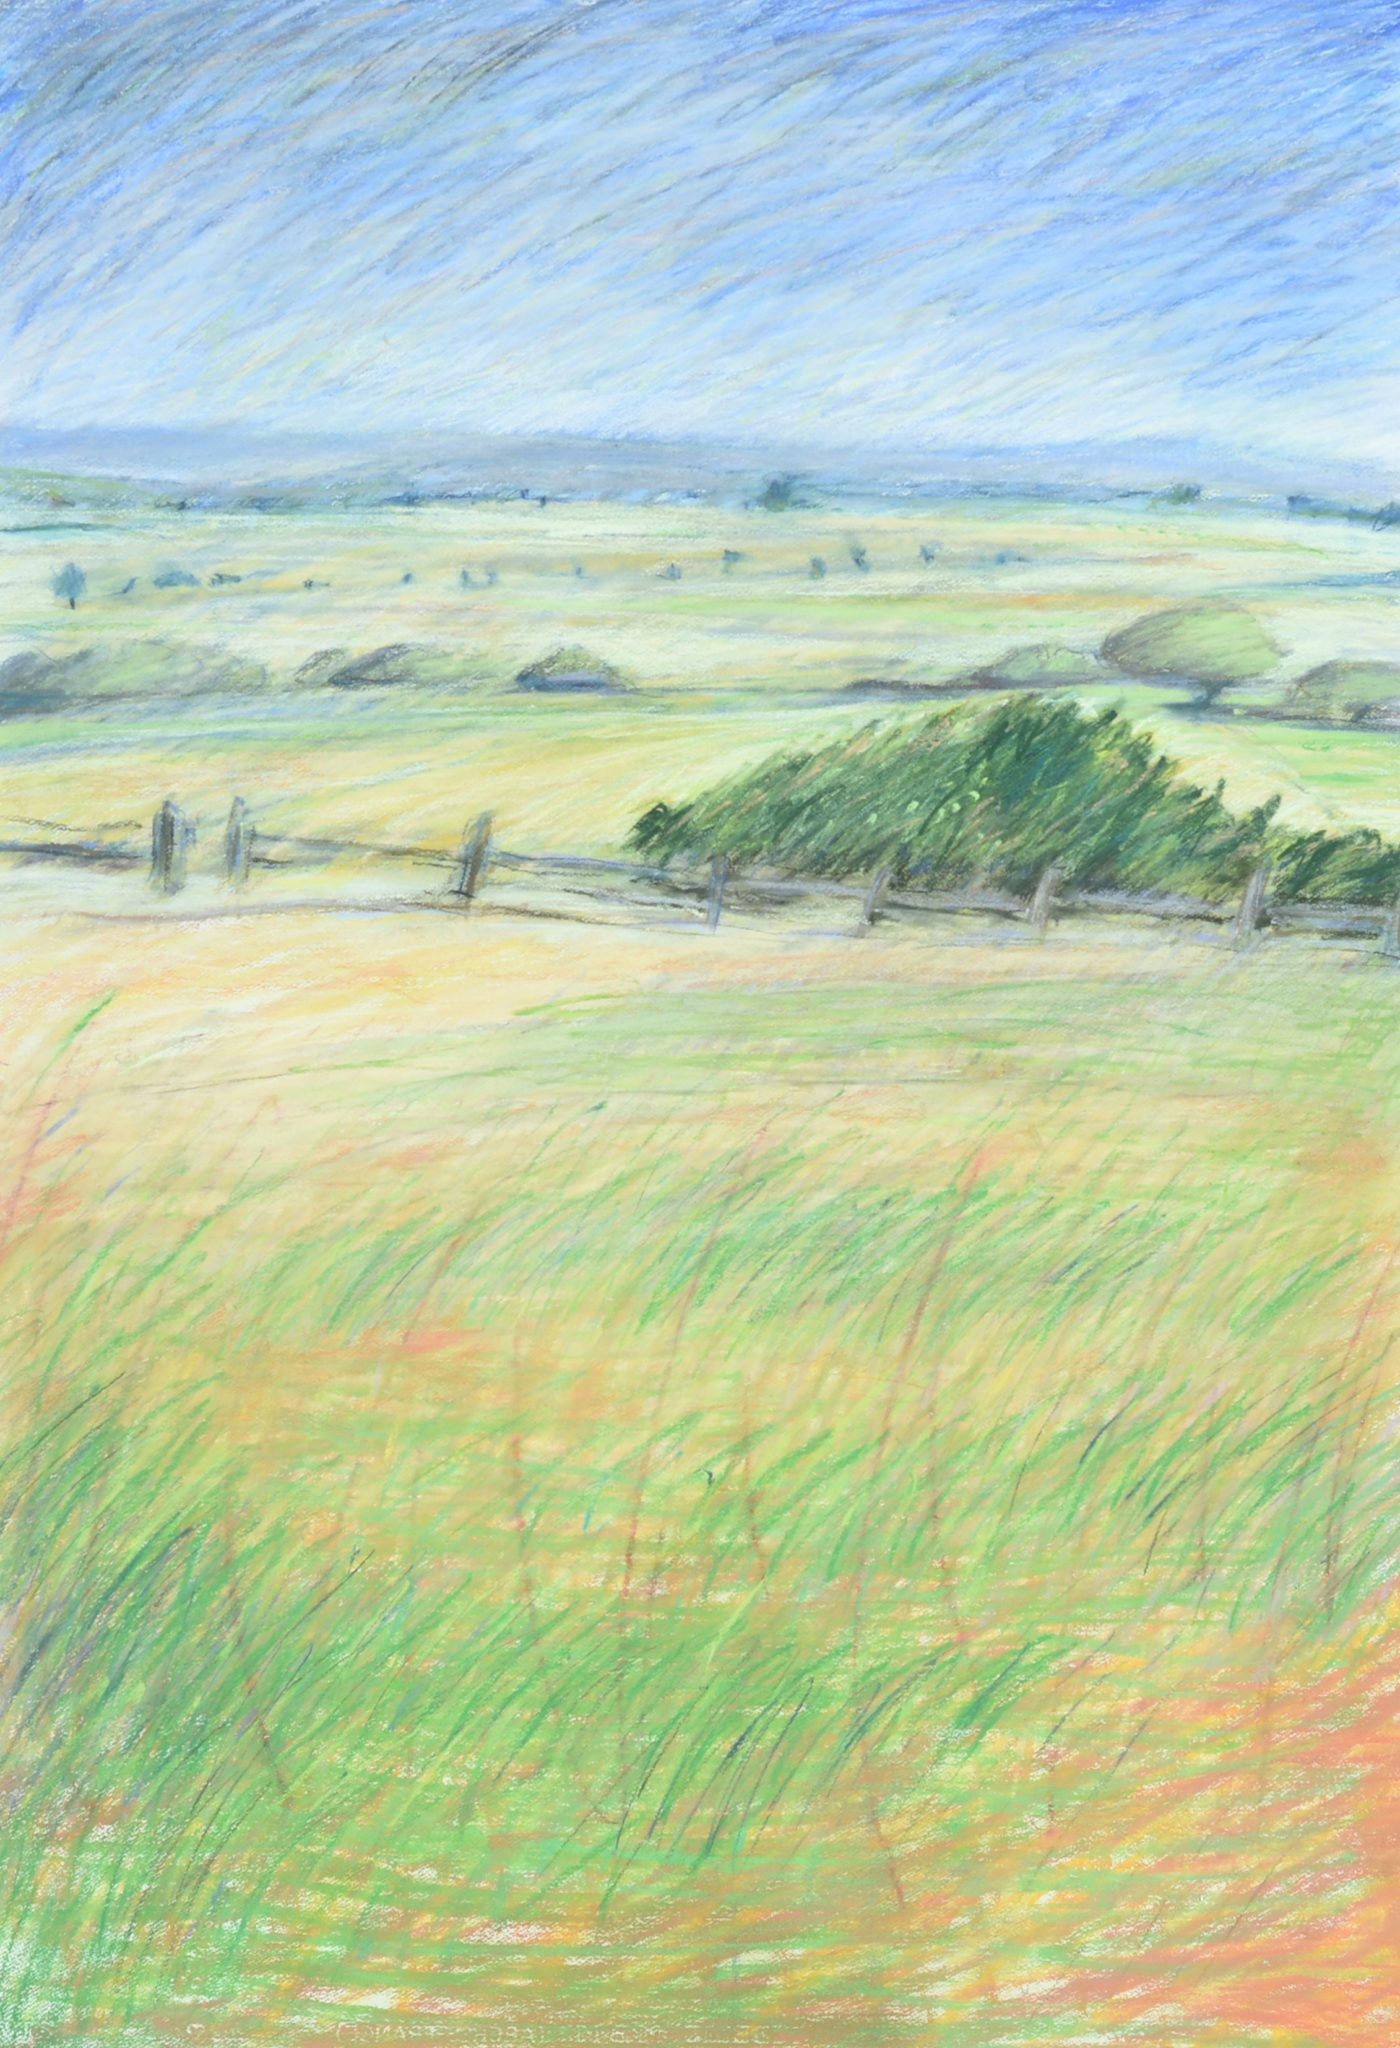 Julie Rosewarne Foster View to the South, 1985, Pastel on paper, 106 x 73 cm, Latrobe Regional Gallery Collection, purchased with the assistance of the Australia Council, 1986.